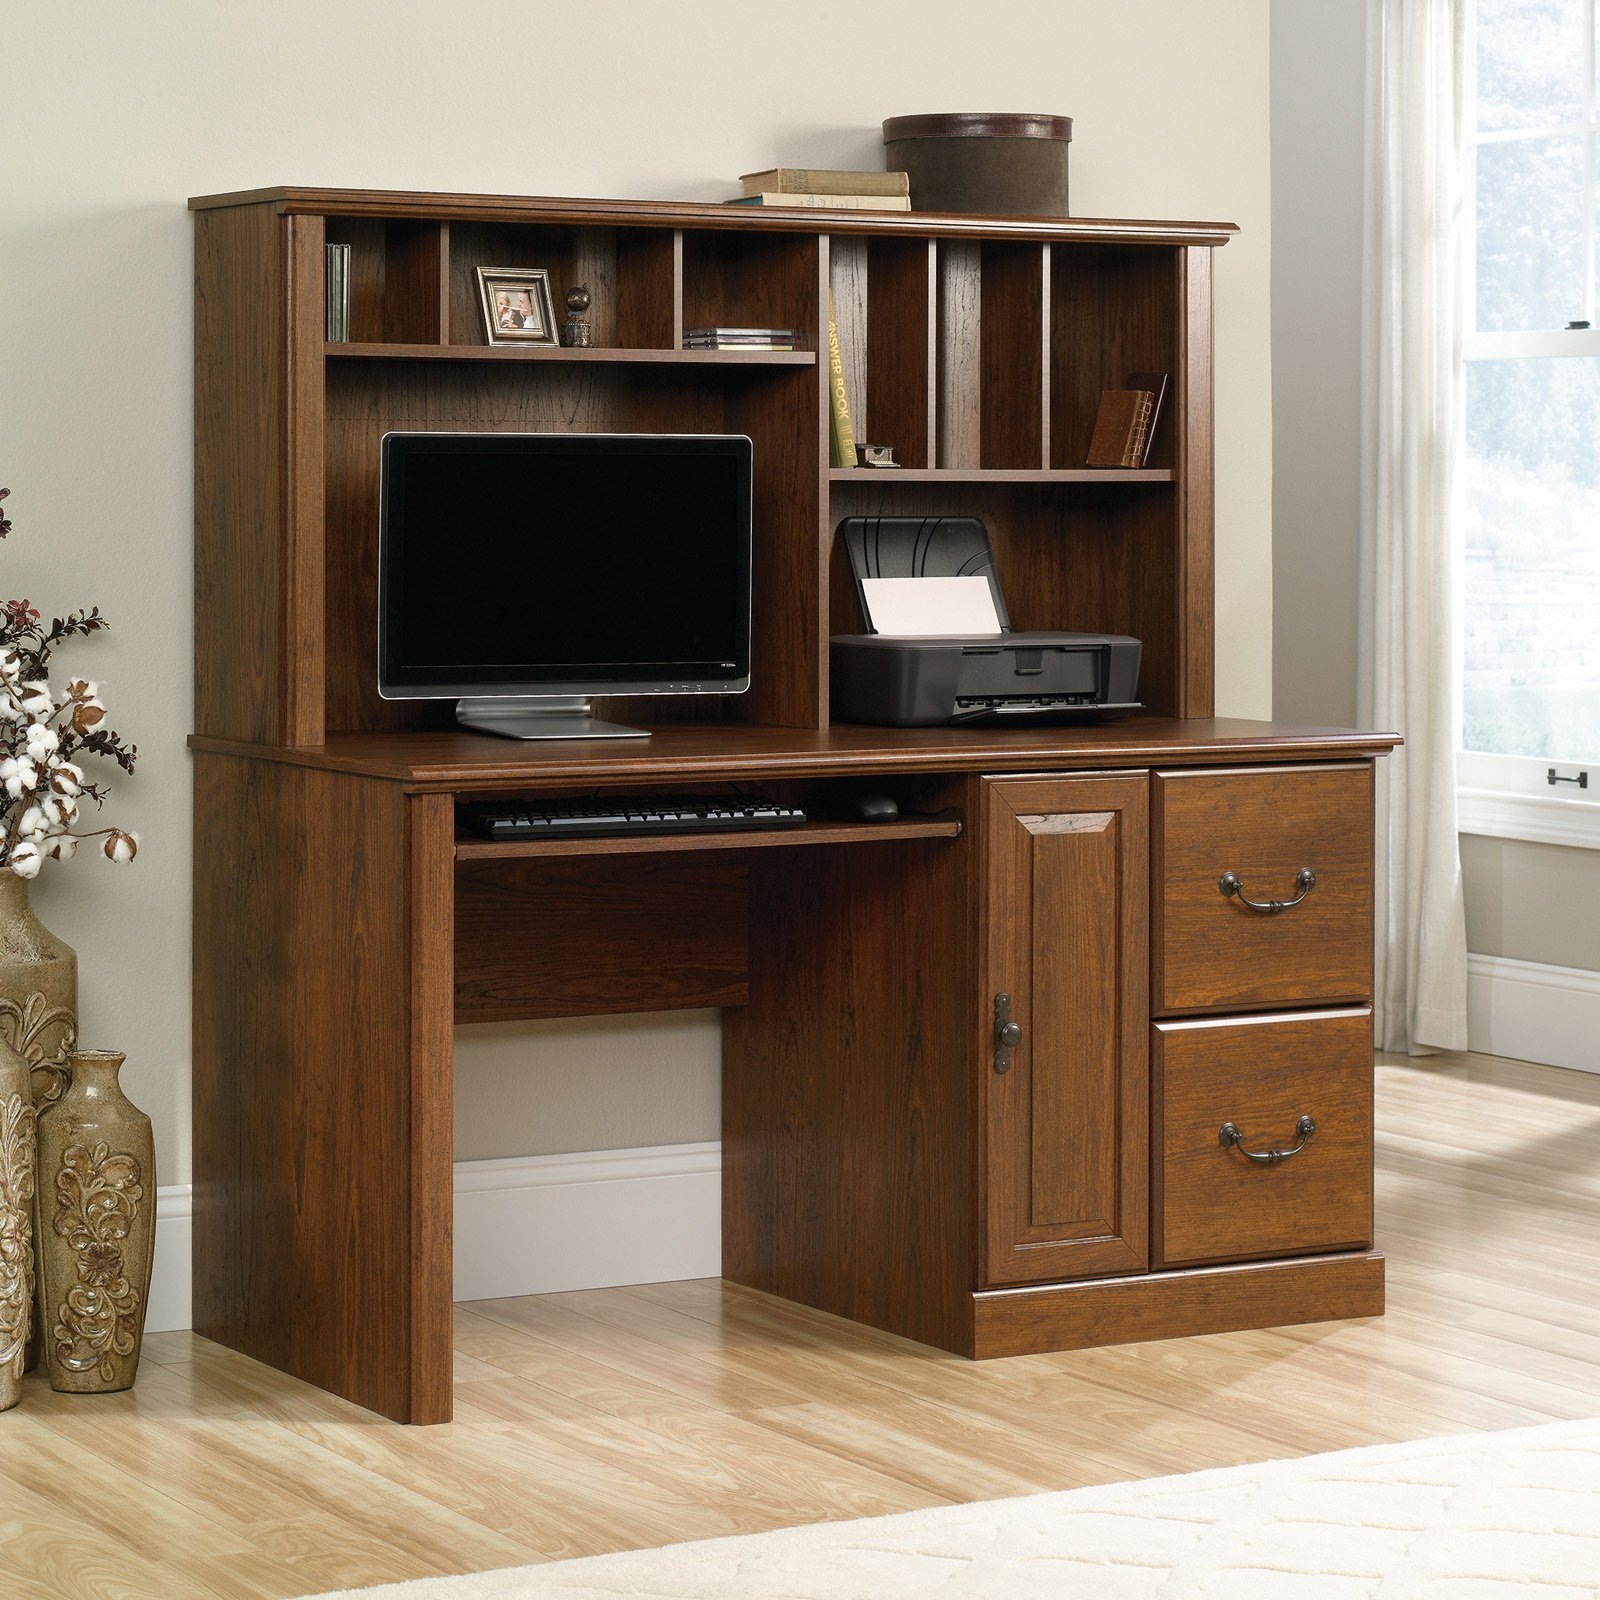 Sauder Orchard Hills Computer Desk With Hutch, Milled Cherry Finish    Walmart.com